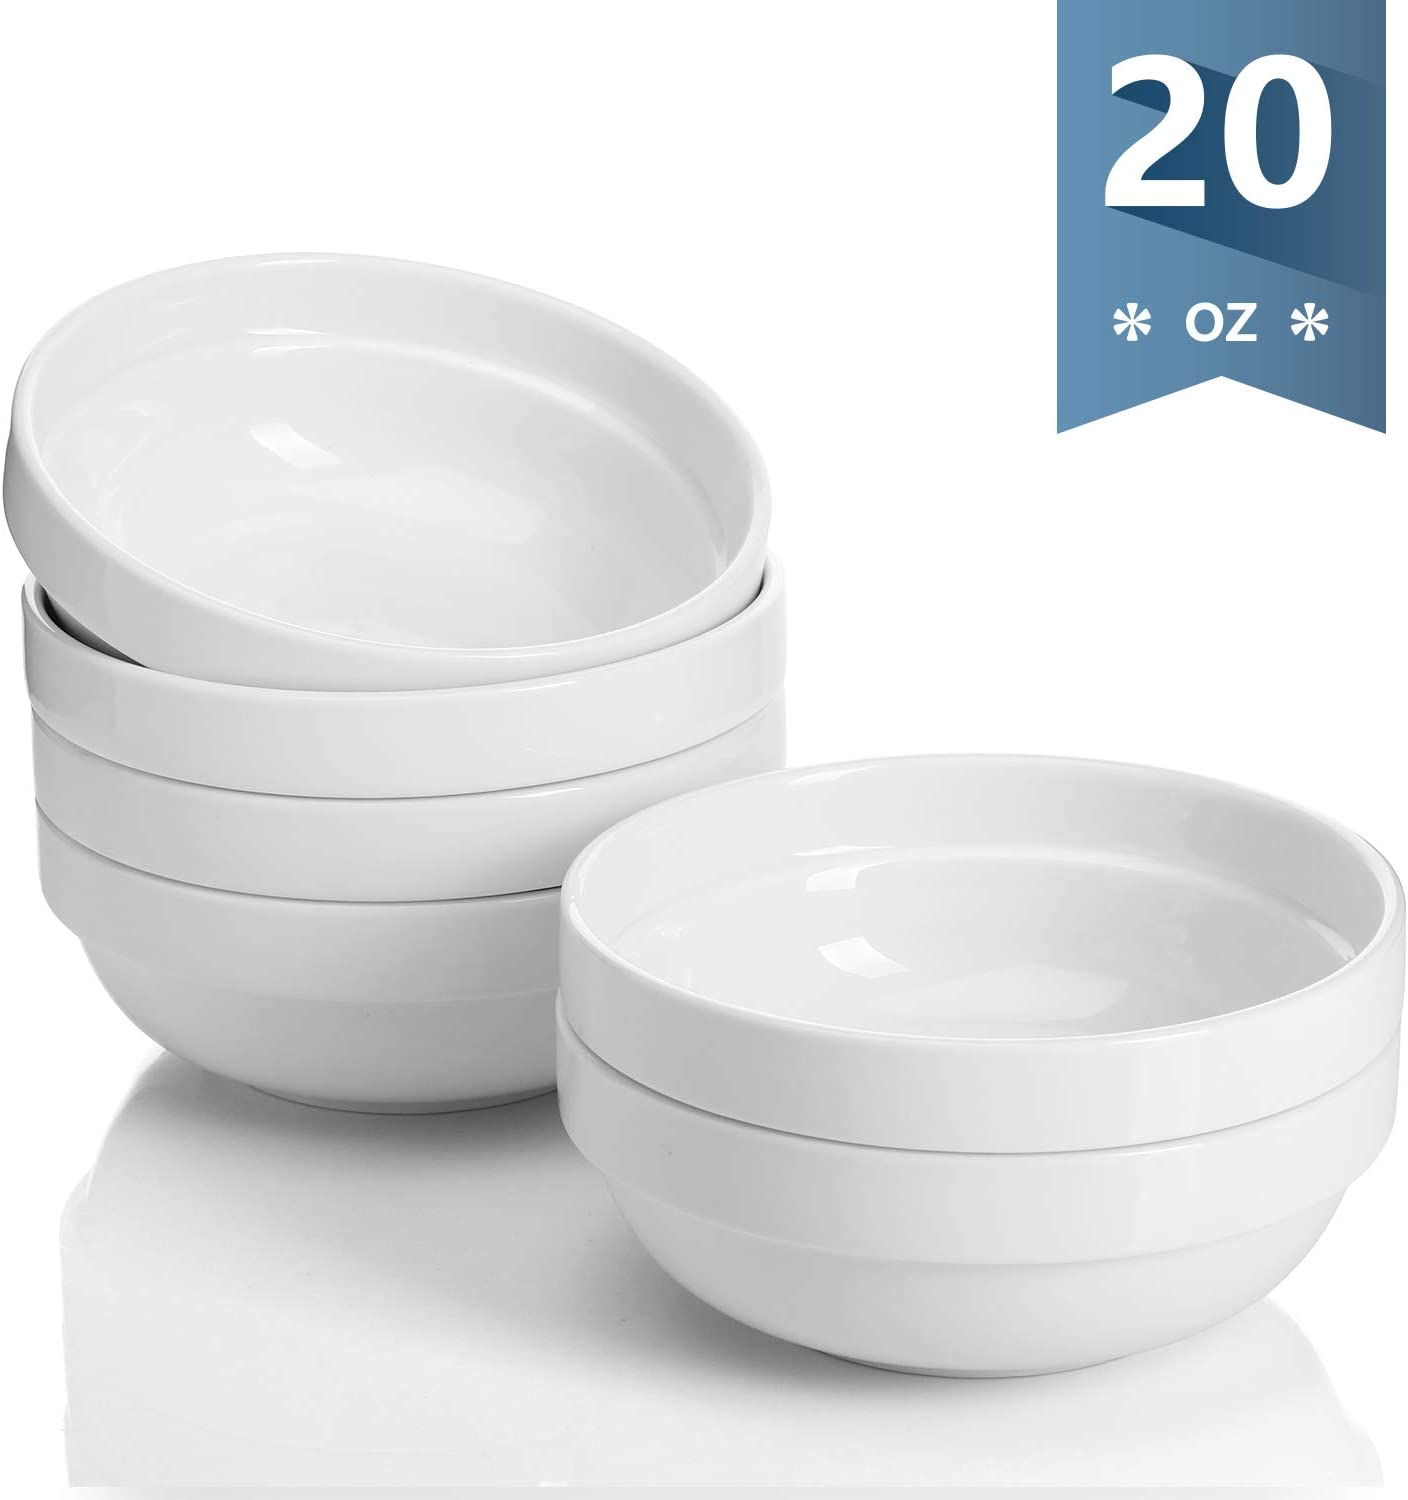 Sweese 119.001 Porcelain Stackable Bowls - 20 Ounce for Cereal, Salad - Set of 6, White